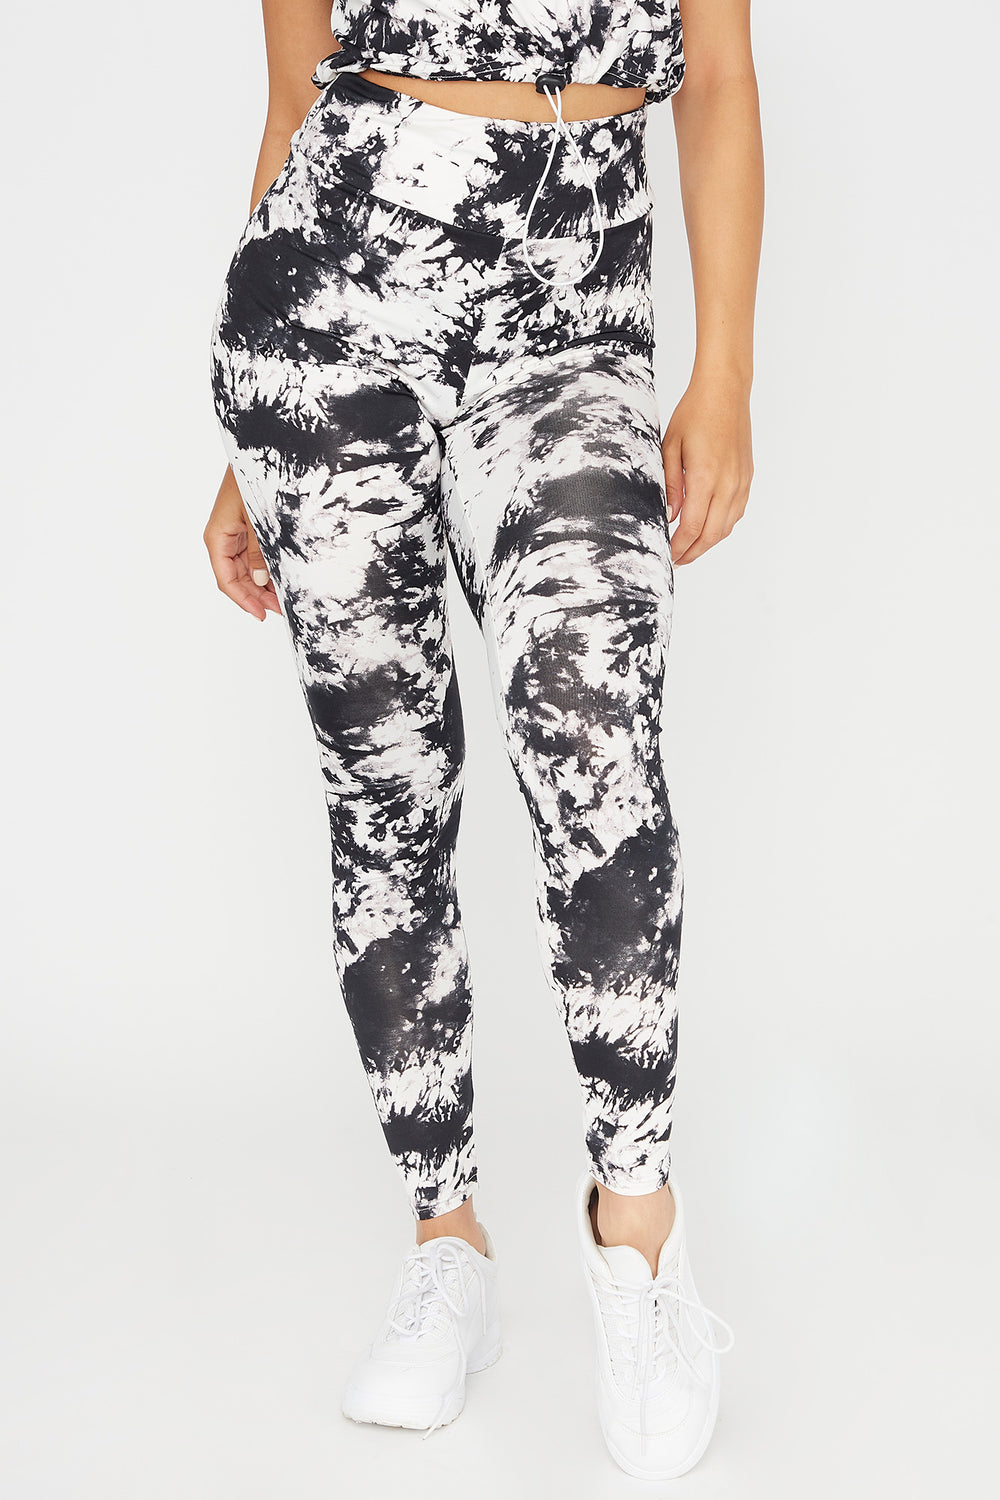 High-Rise Tie Dye Pull-On Legging Black